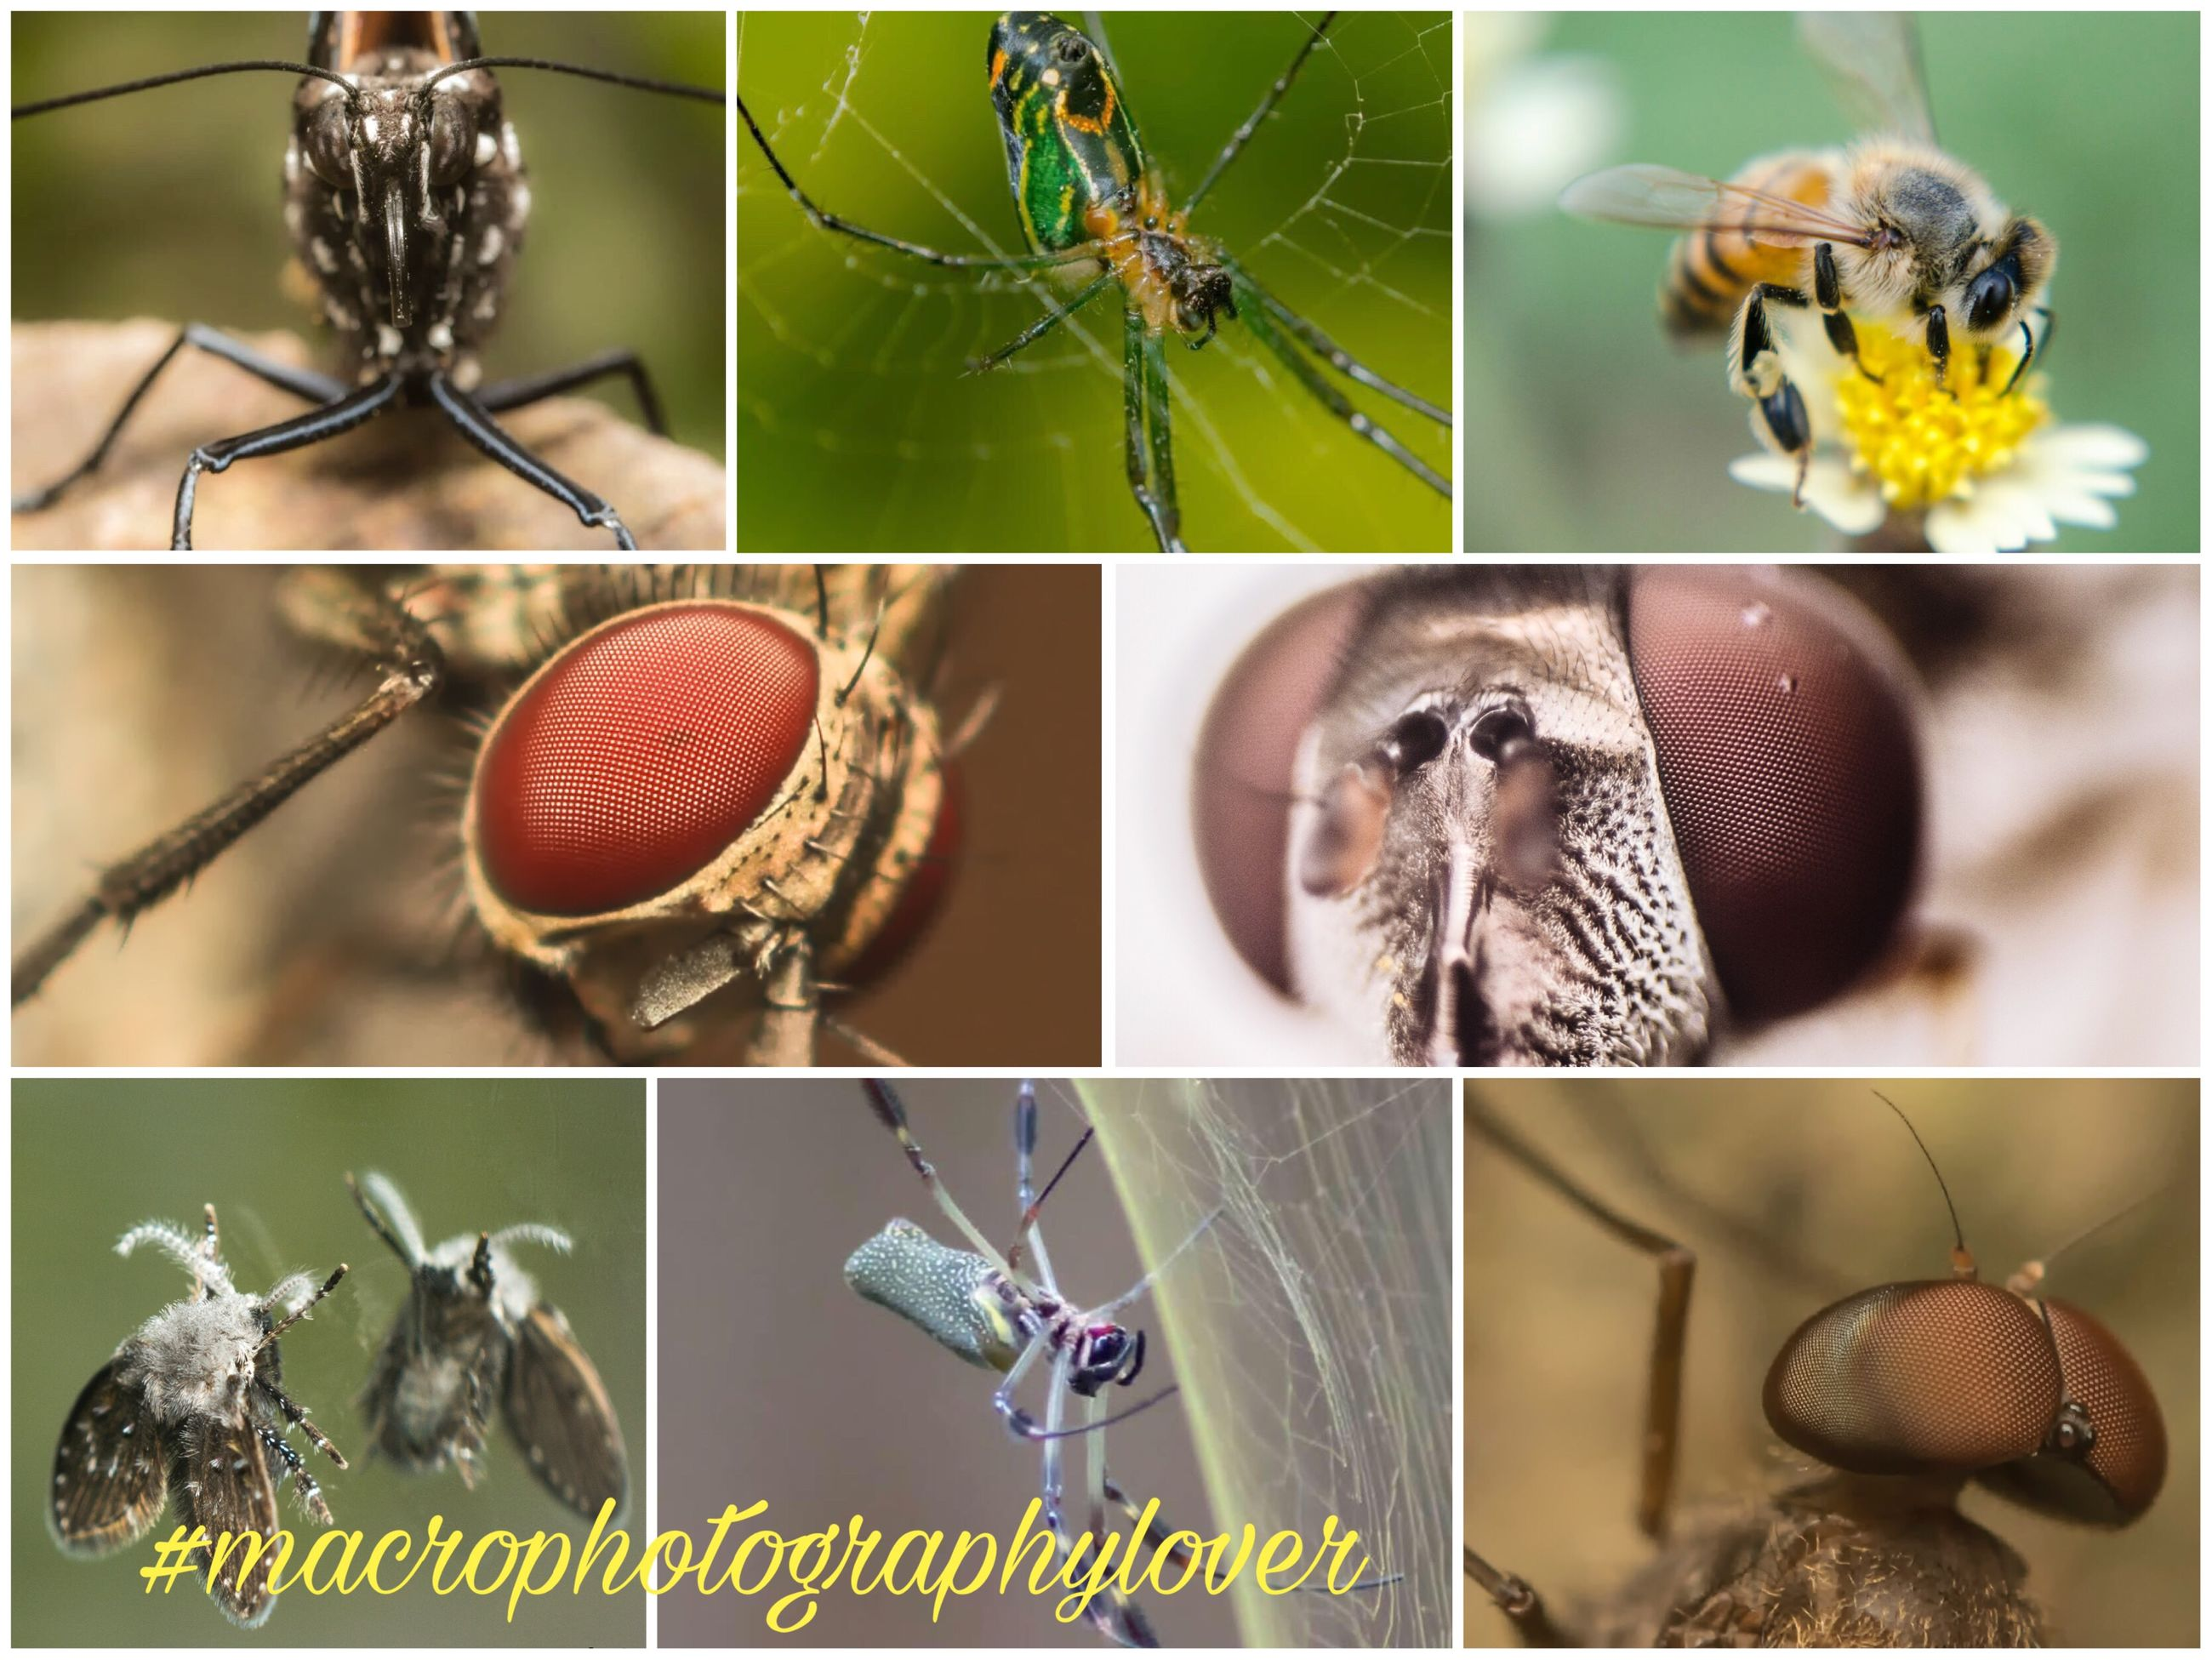 collage, digital composite, close-up, animal themes, focus on foreground, no people, one animal, animals in the wild, freshness, outdoors, multiple image, day